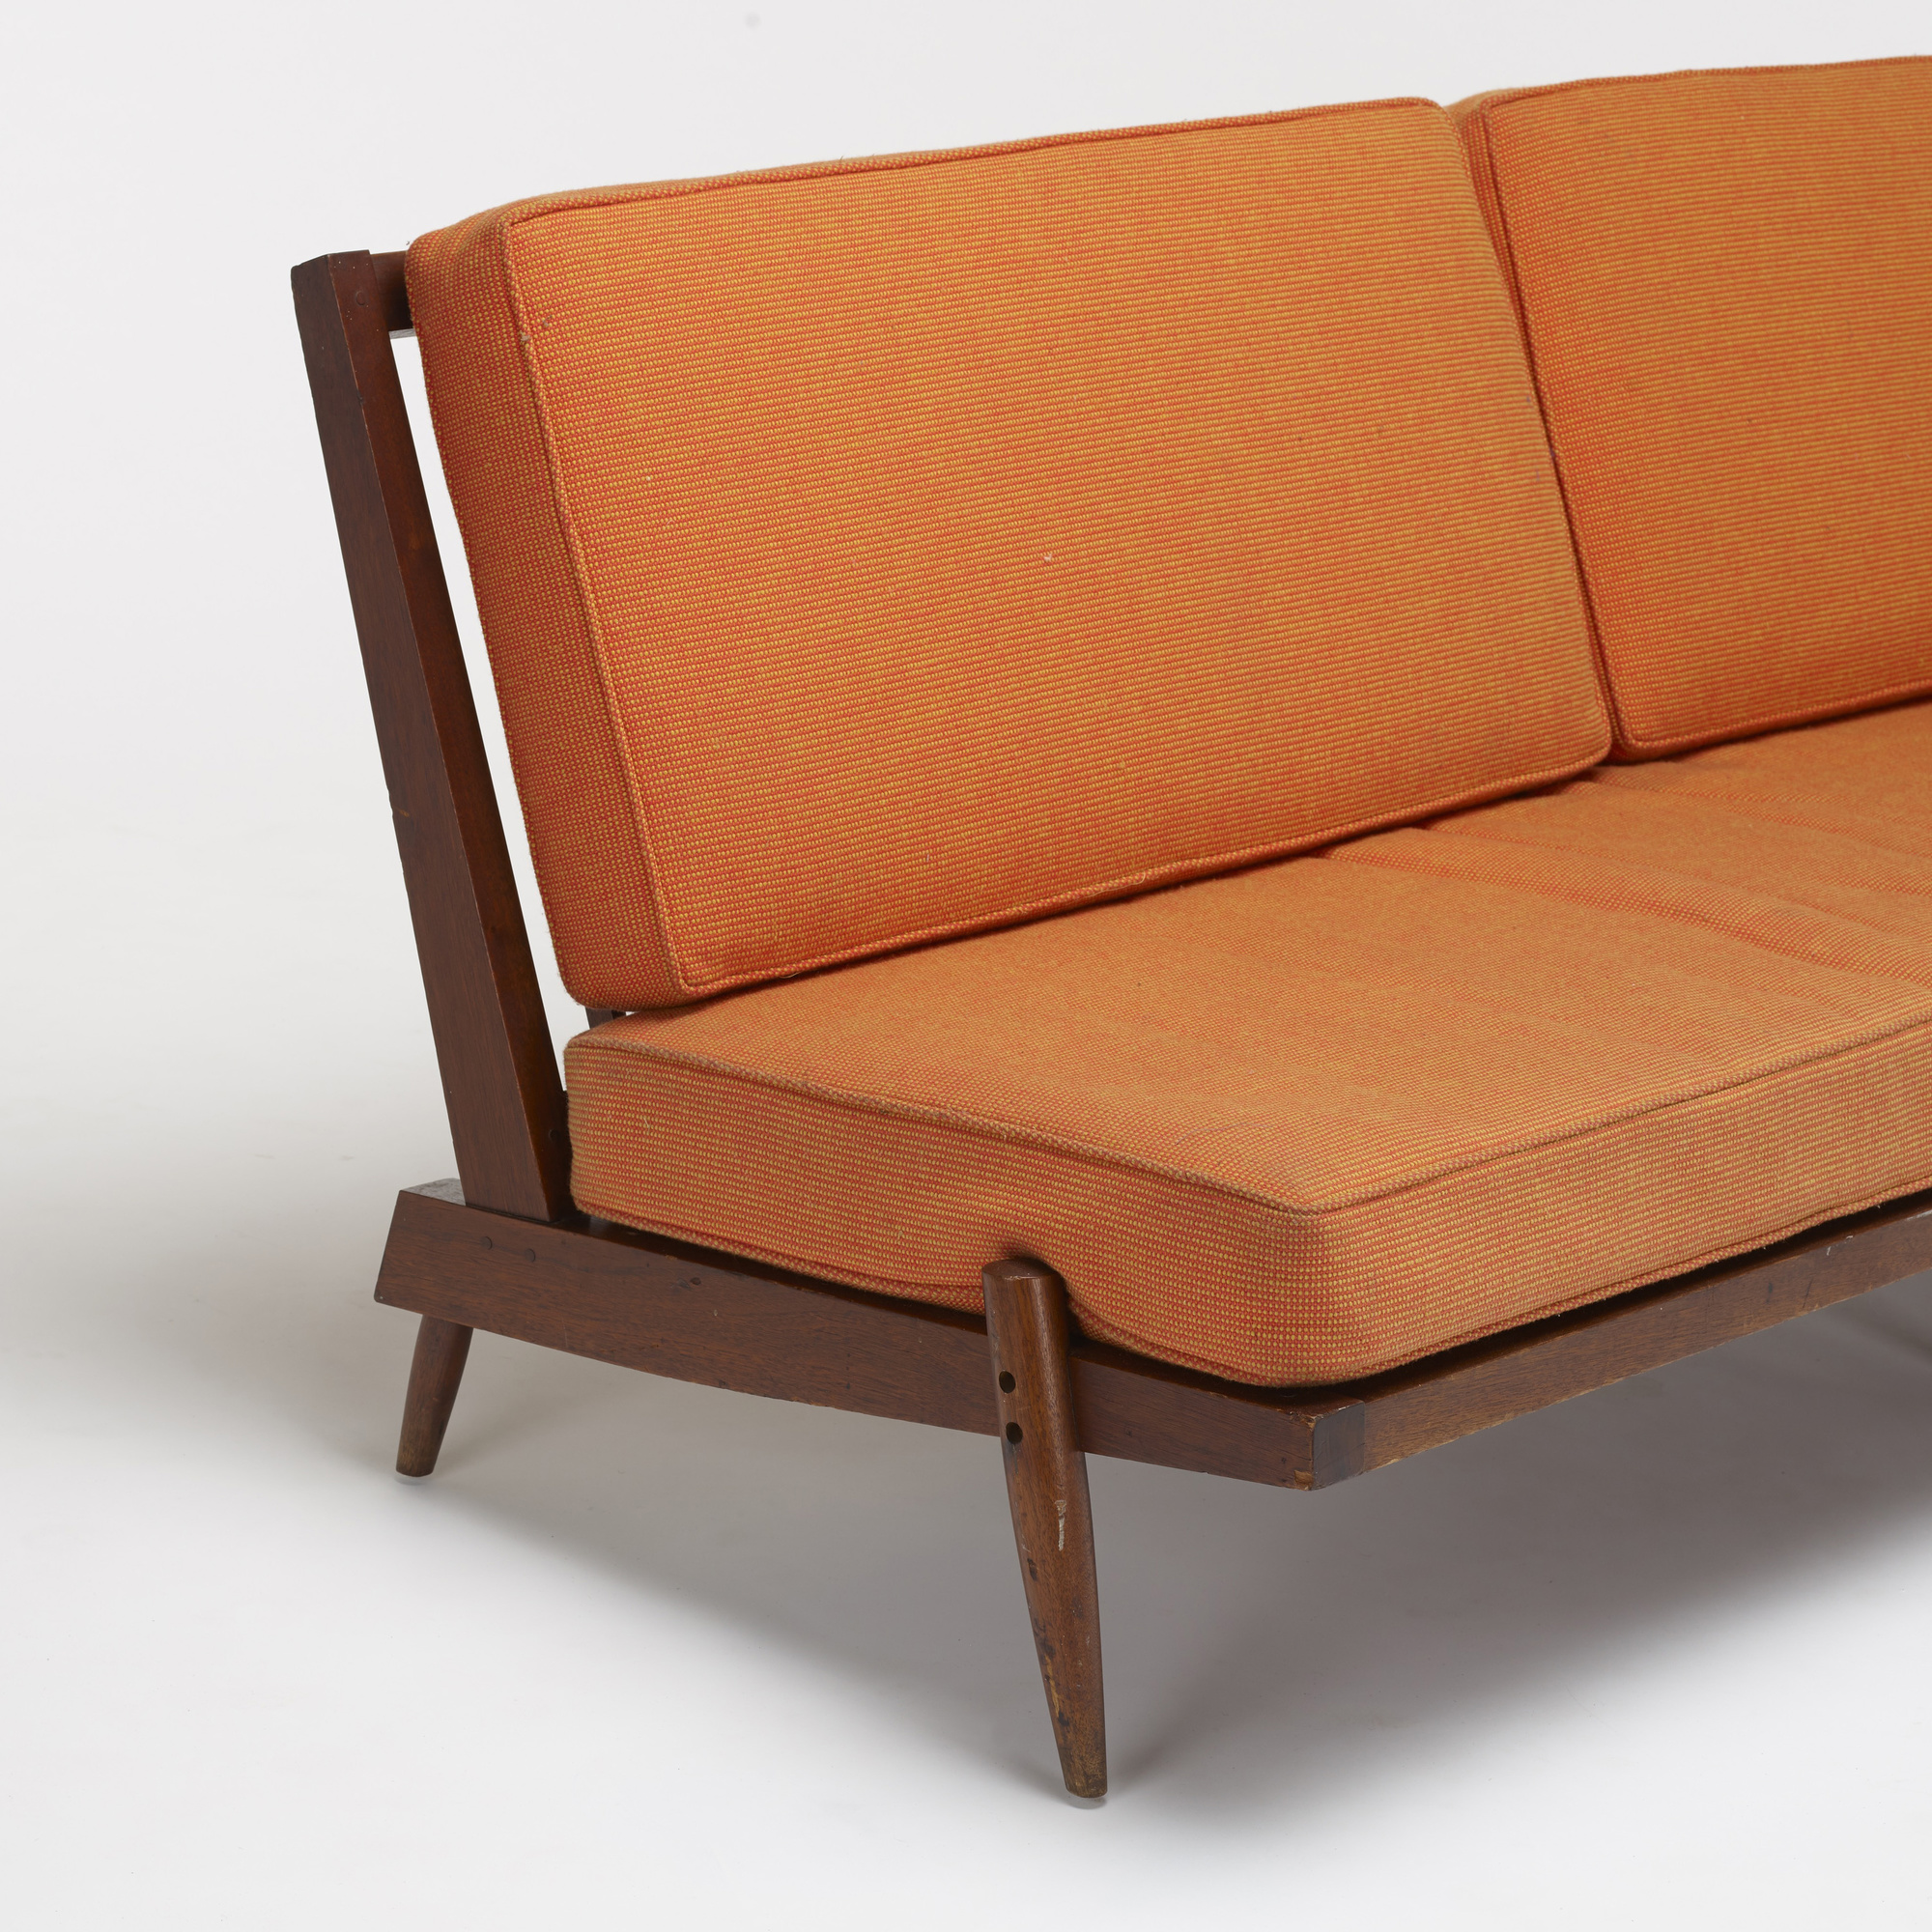 627: In the manner of George Nakashima / sofa (3 of 3)